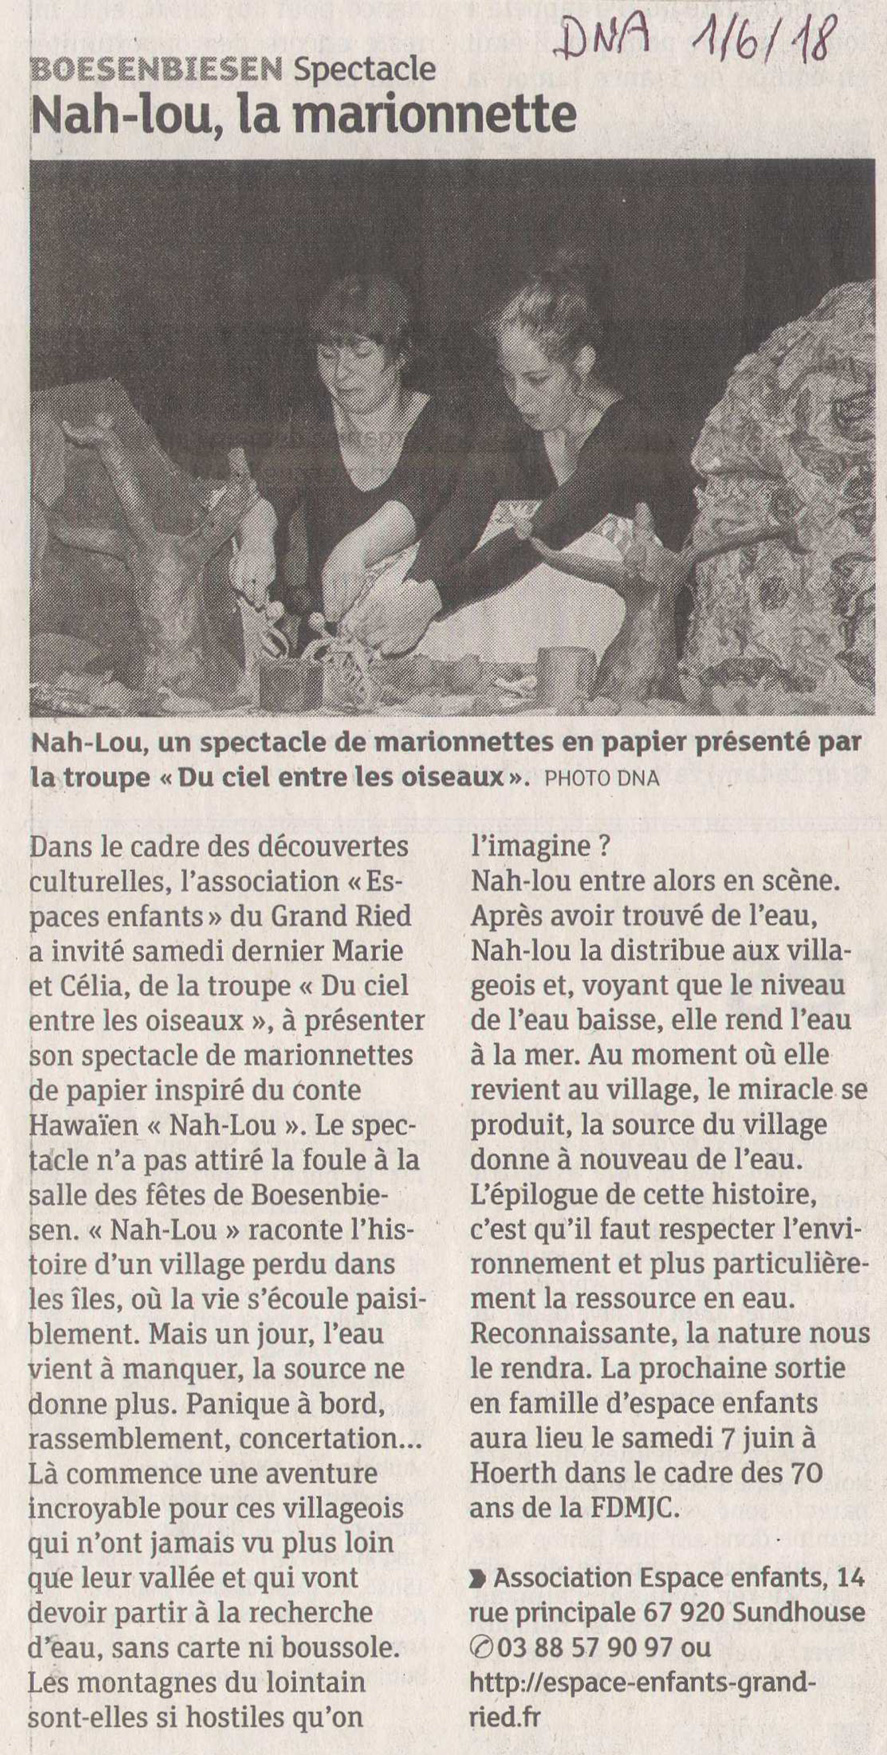 20180601_Spectacle_Marionnettes_Article_Dna